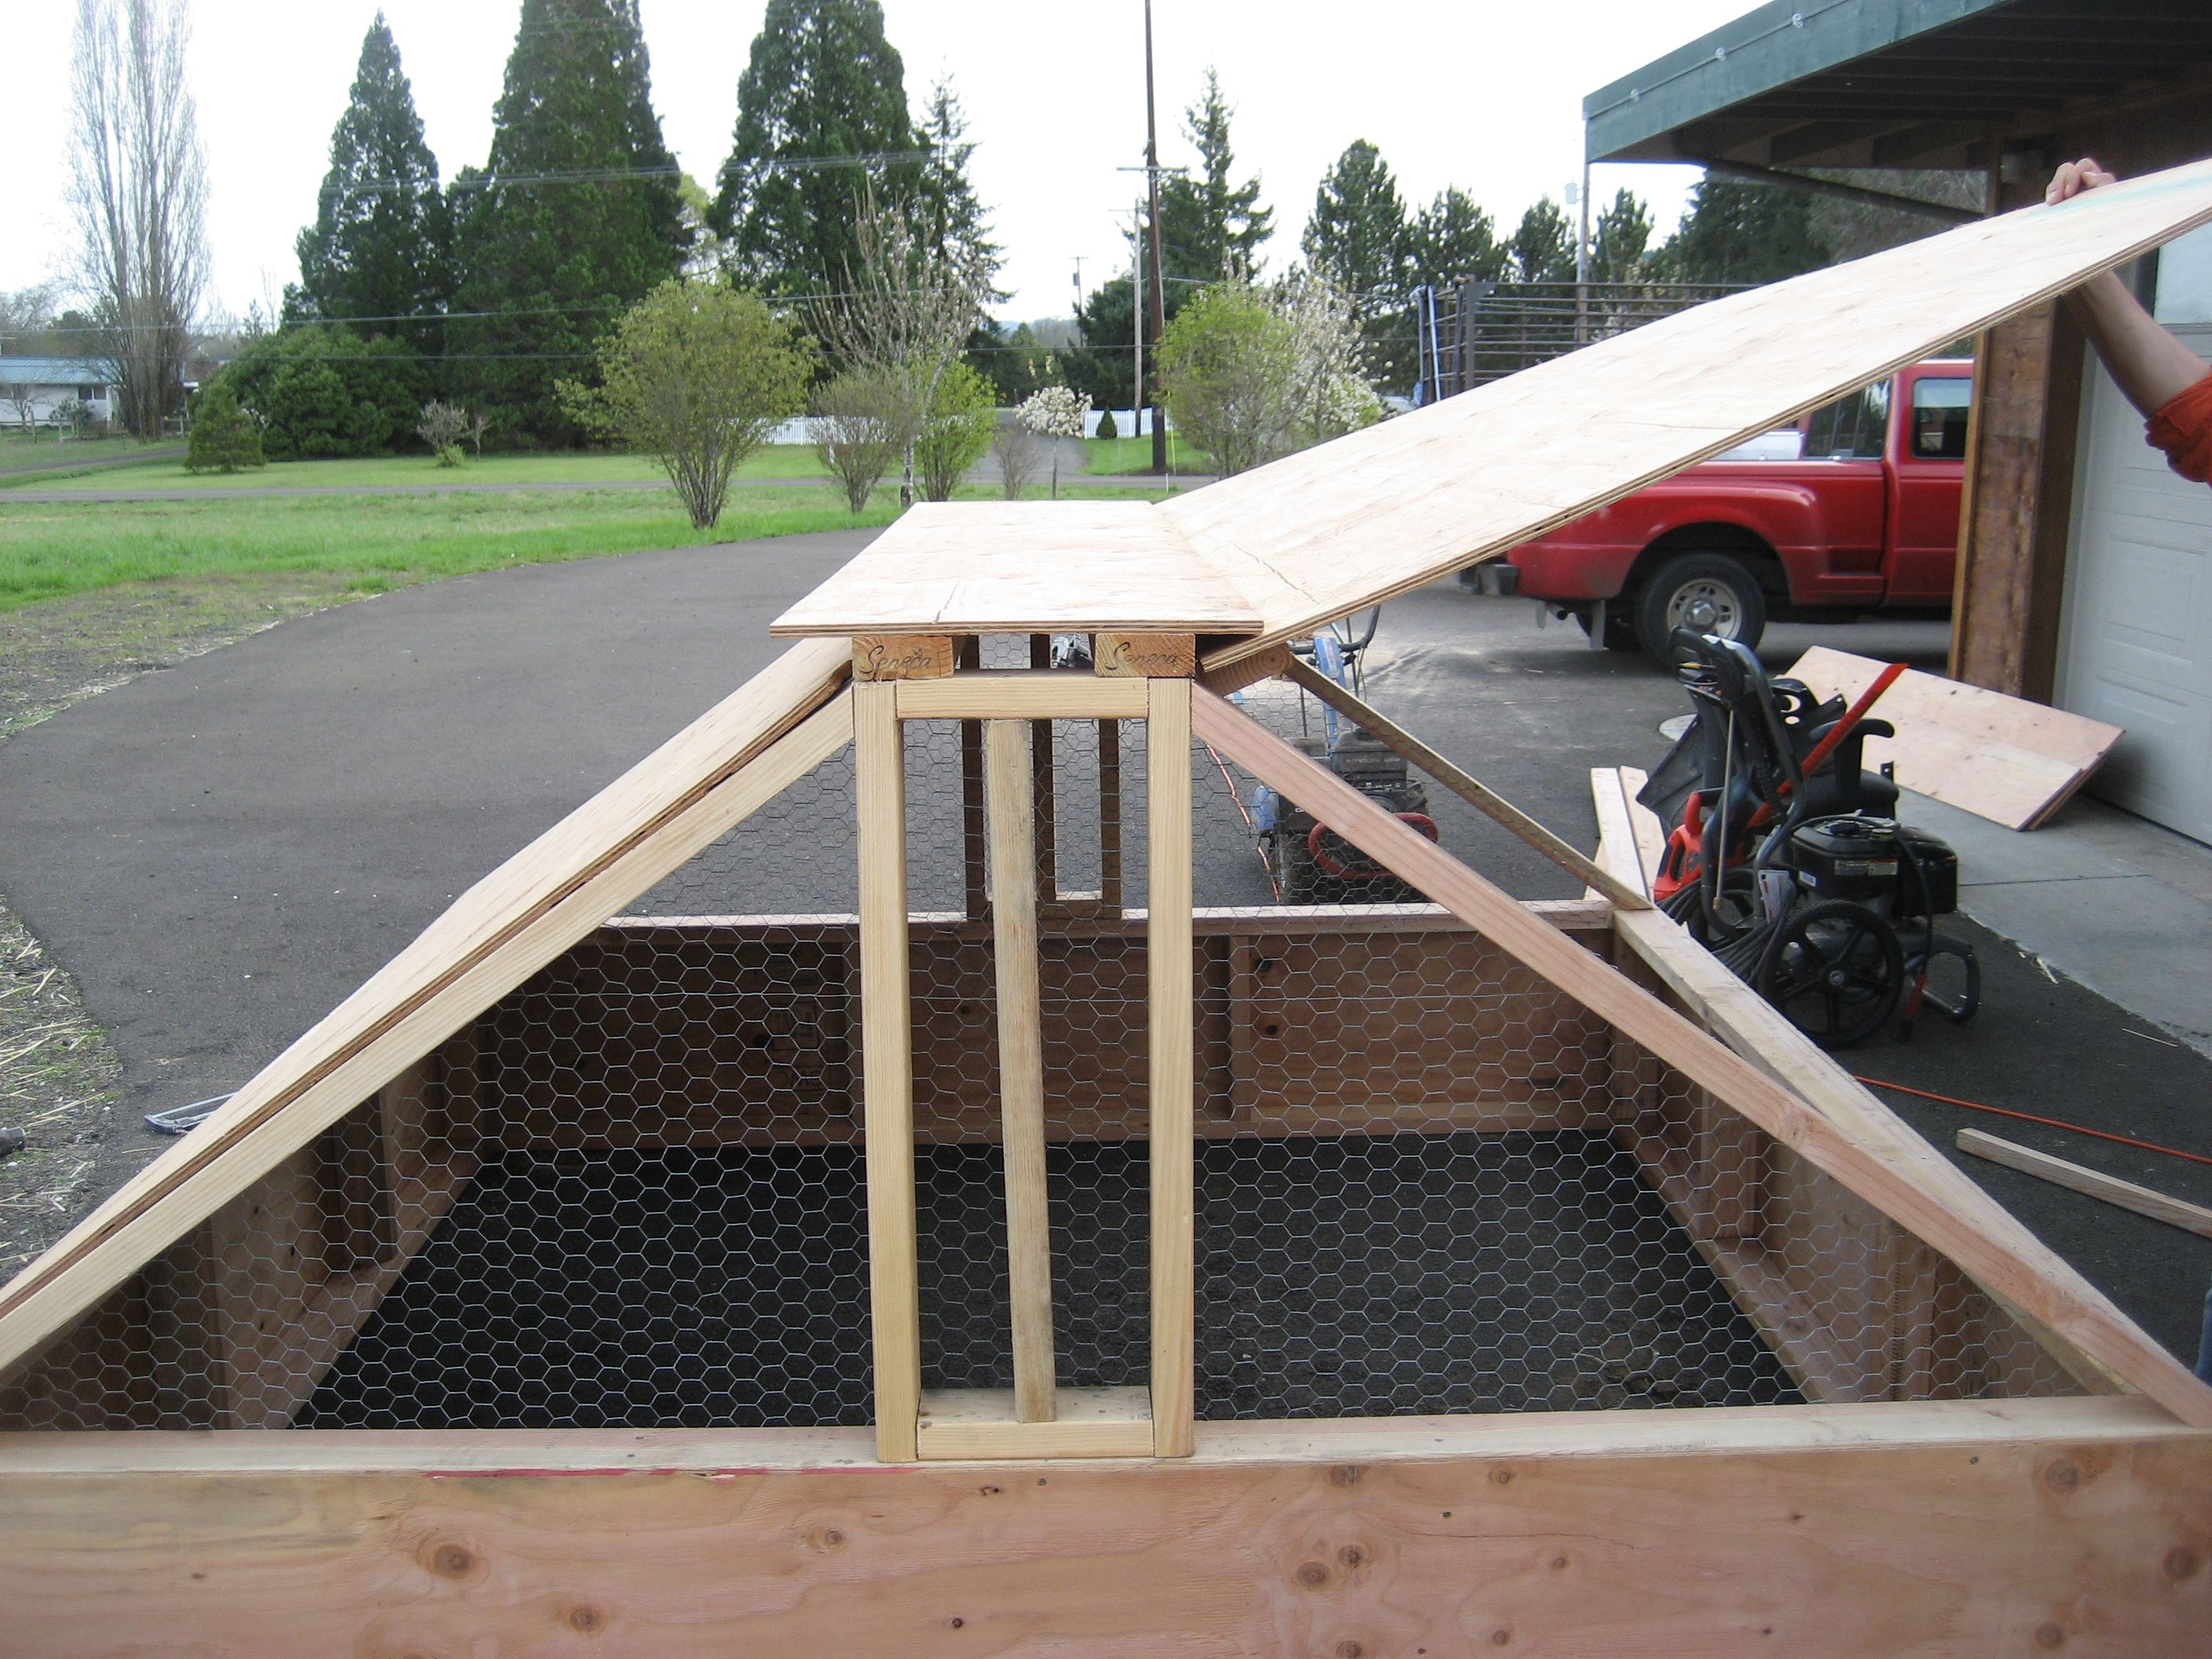 Chicken Brooder House With Brooder And Hover Plans | Chicken Brooder ...